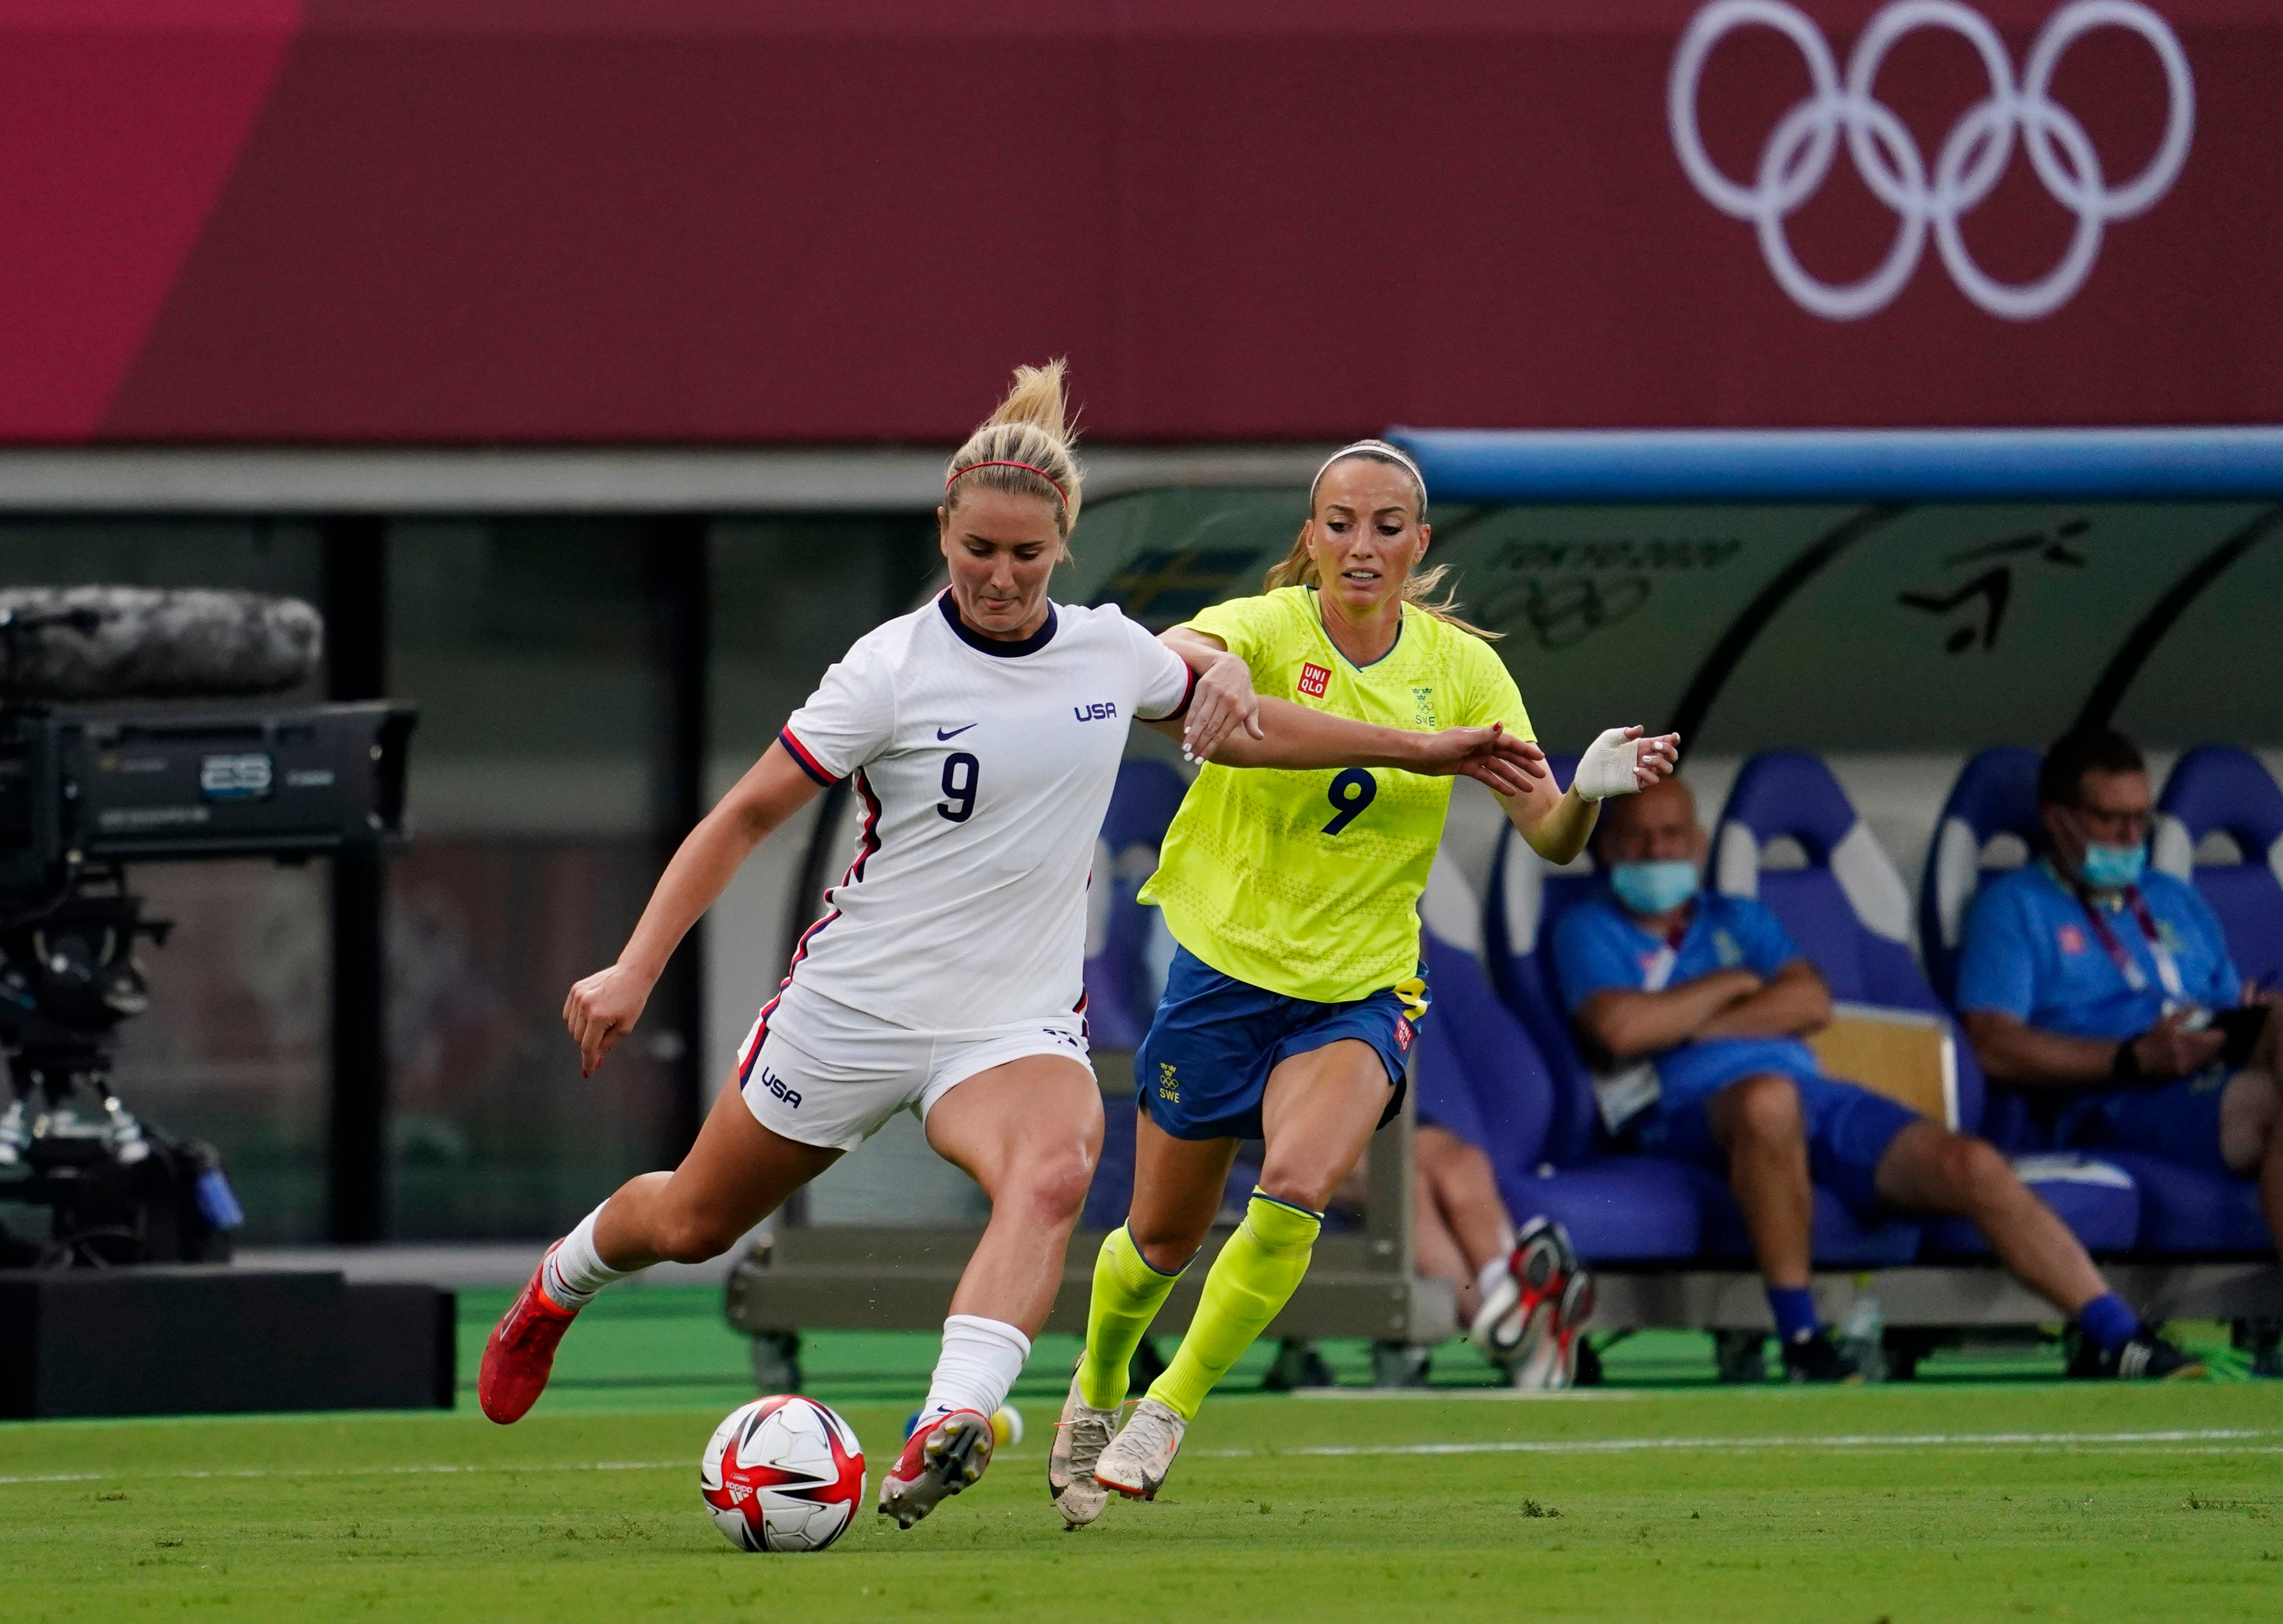 usatoday.com - Christian Ortega, USA TODAY - Saturday's Tokyo Olympics schedule: USWNT back on the pitch, 3x3 basketball and surfing make their debuts